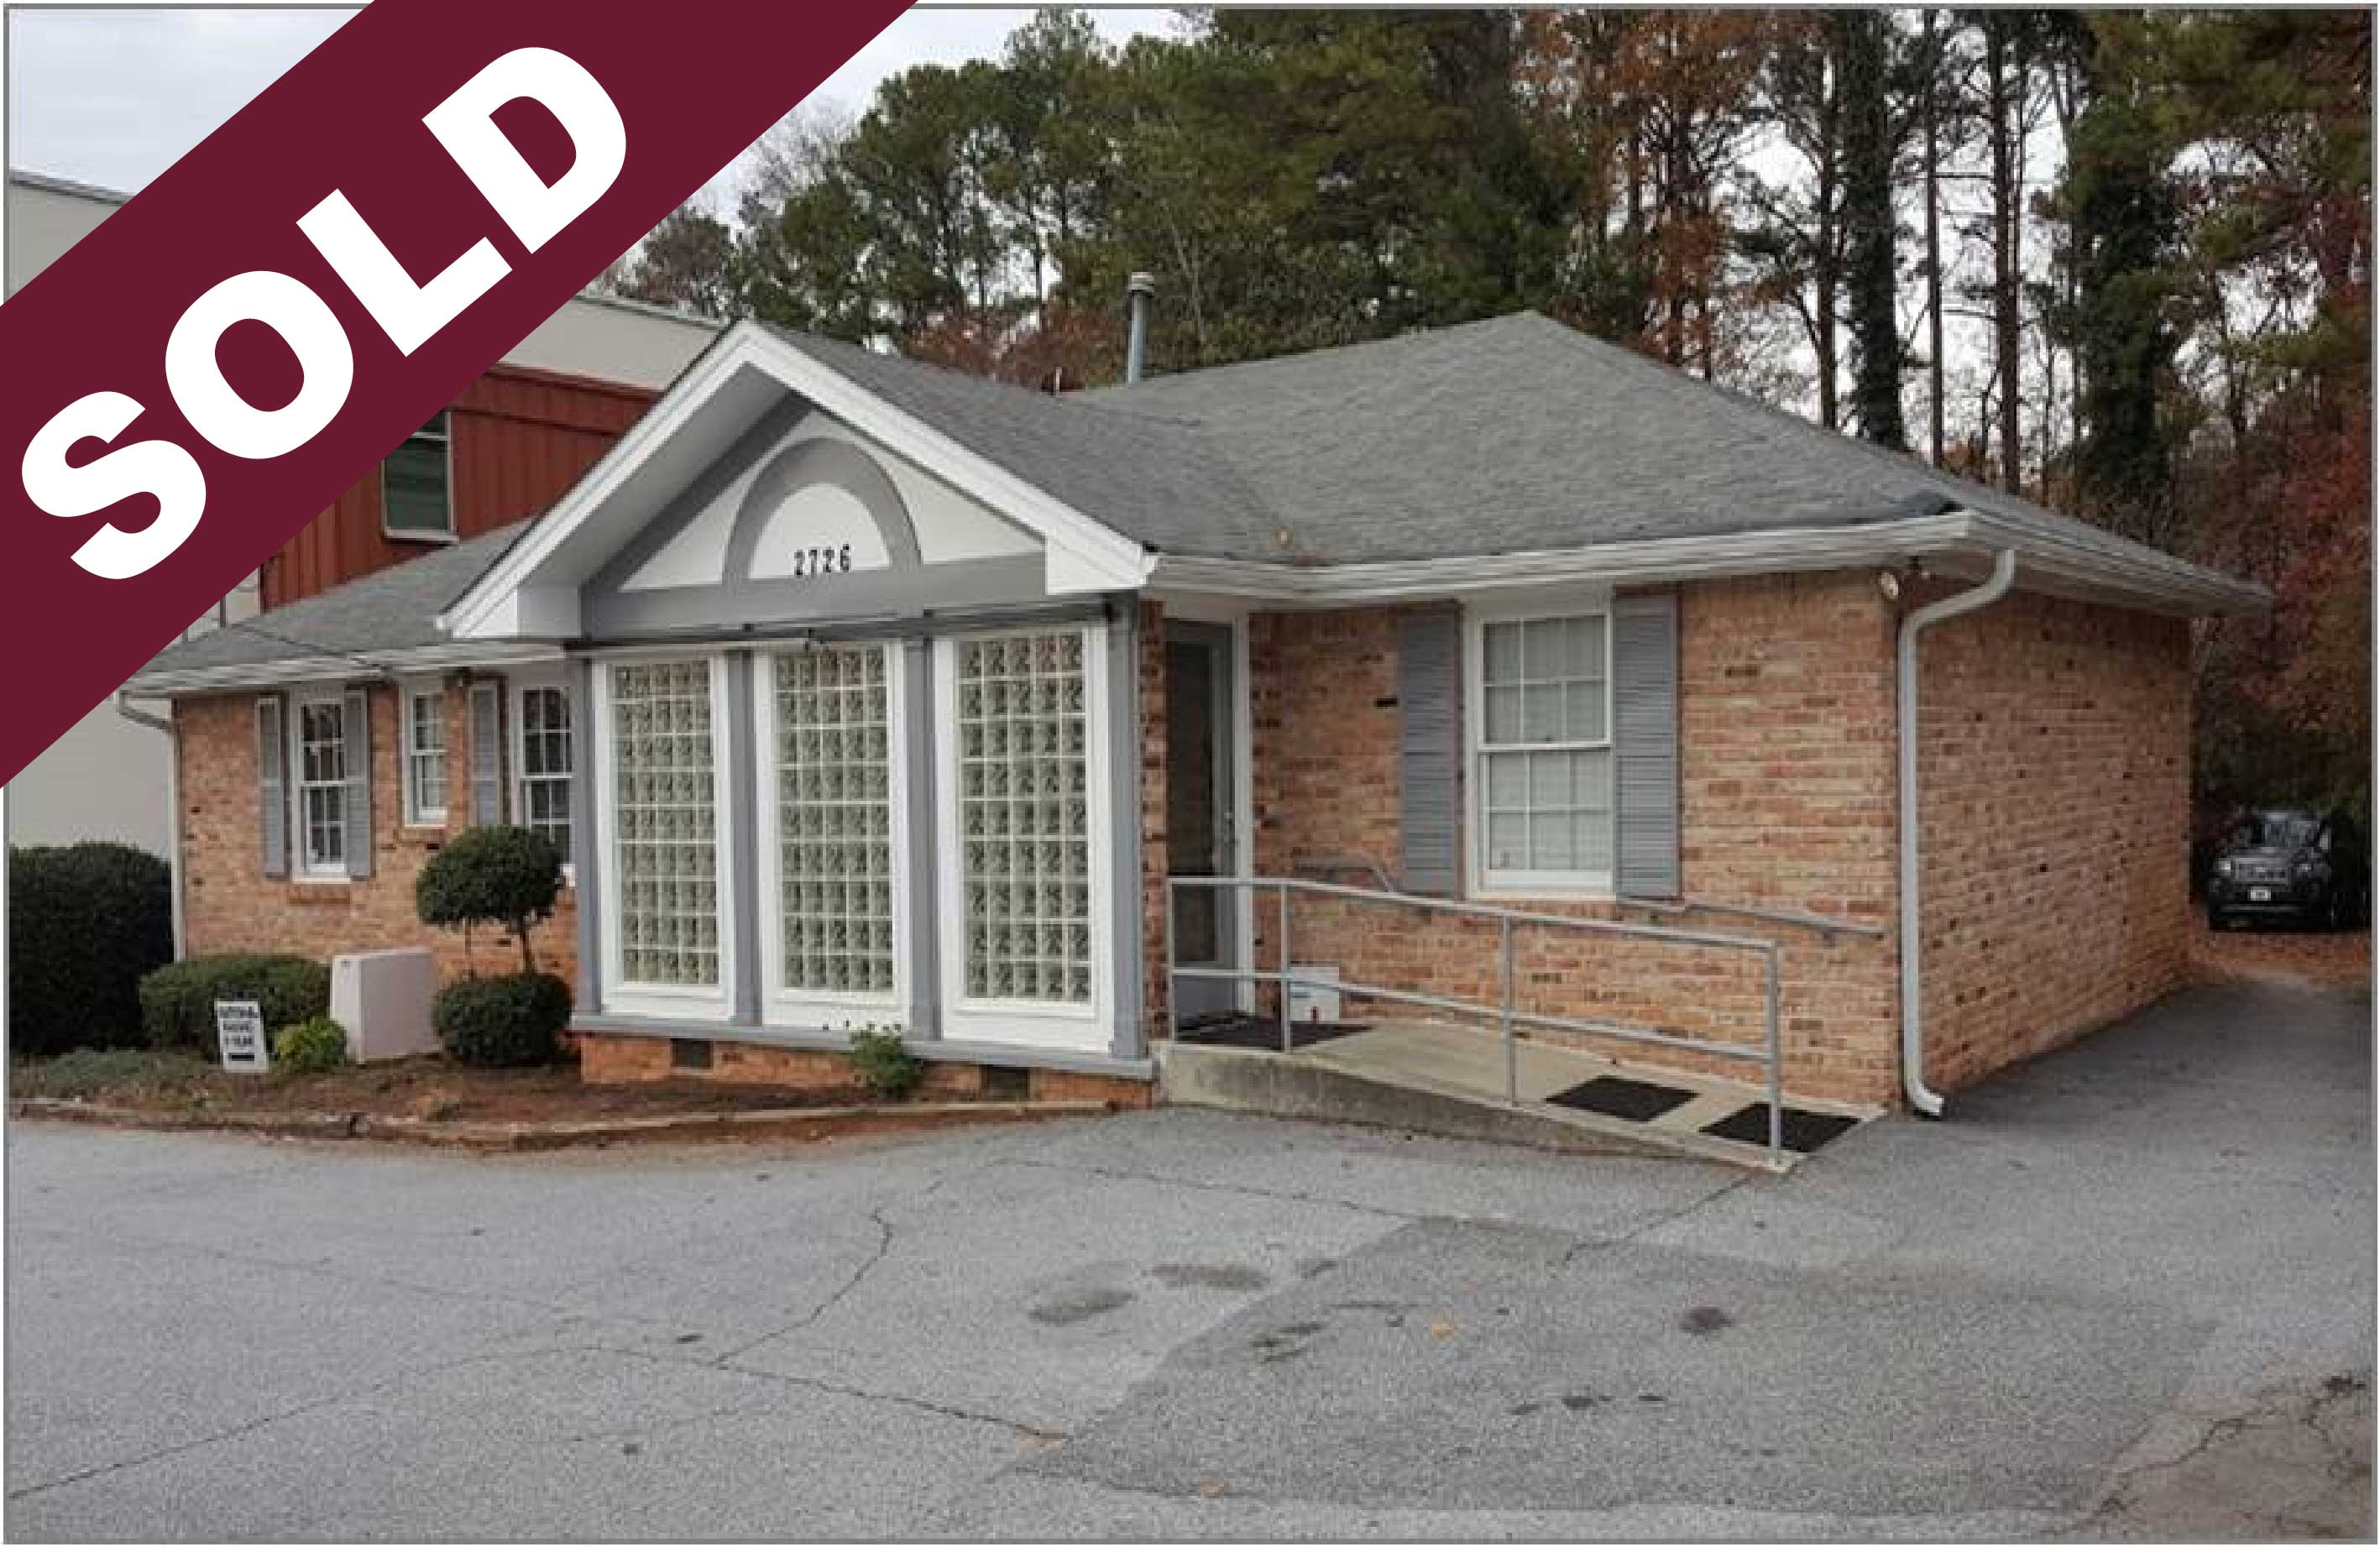 SOLD: 2726 Lawrenceville Hwy Decatur, GA 30033